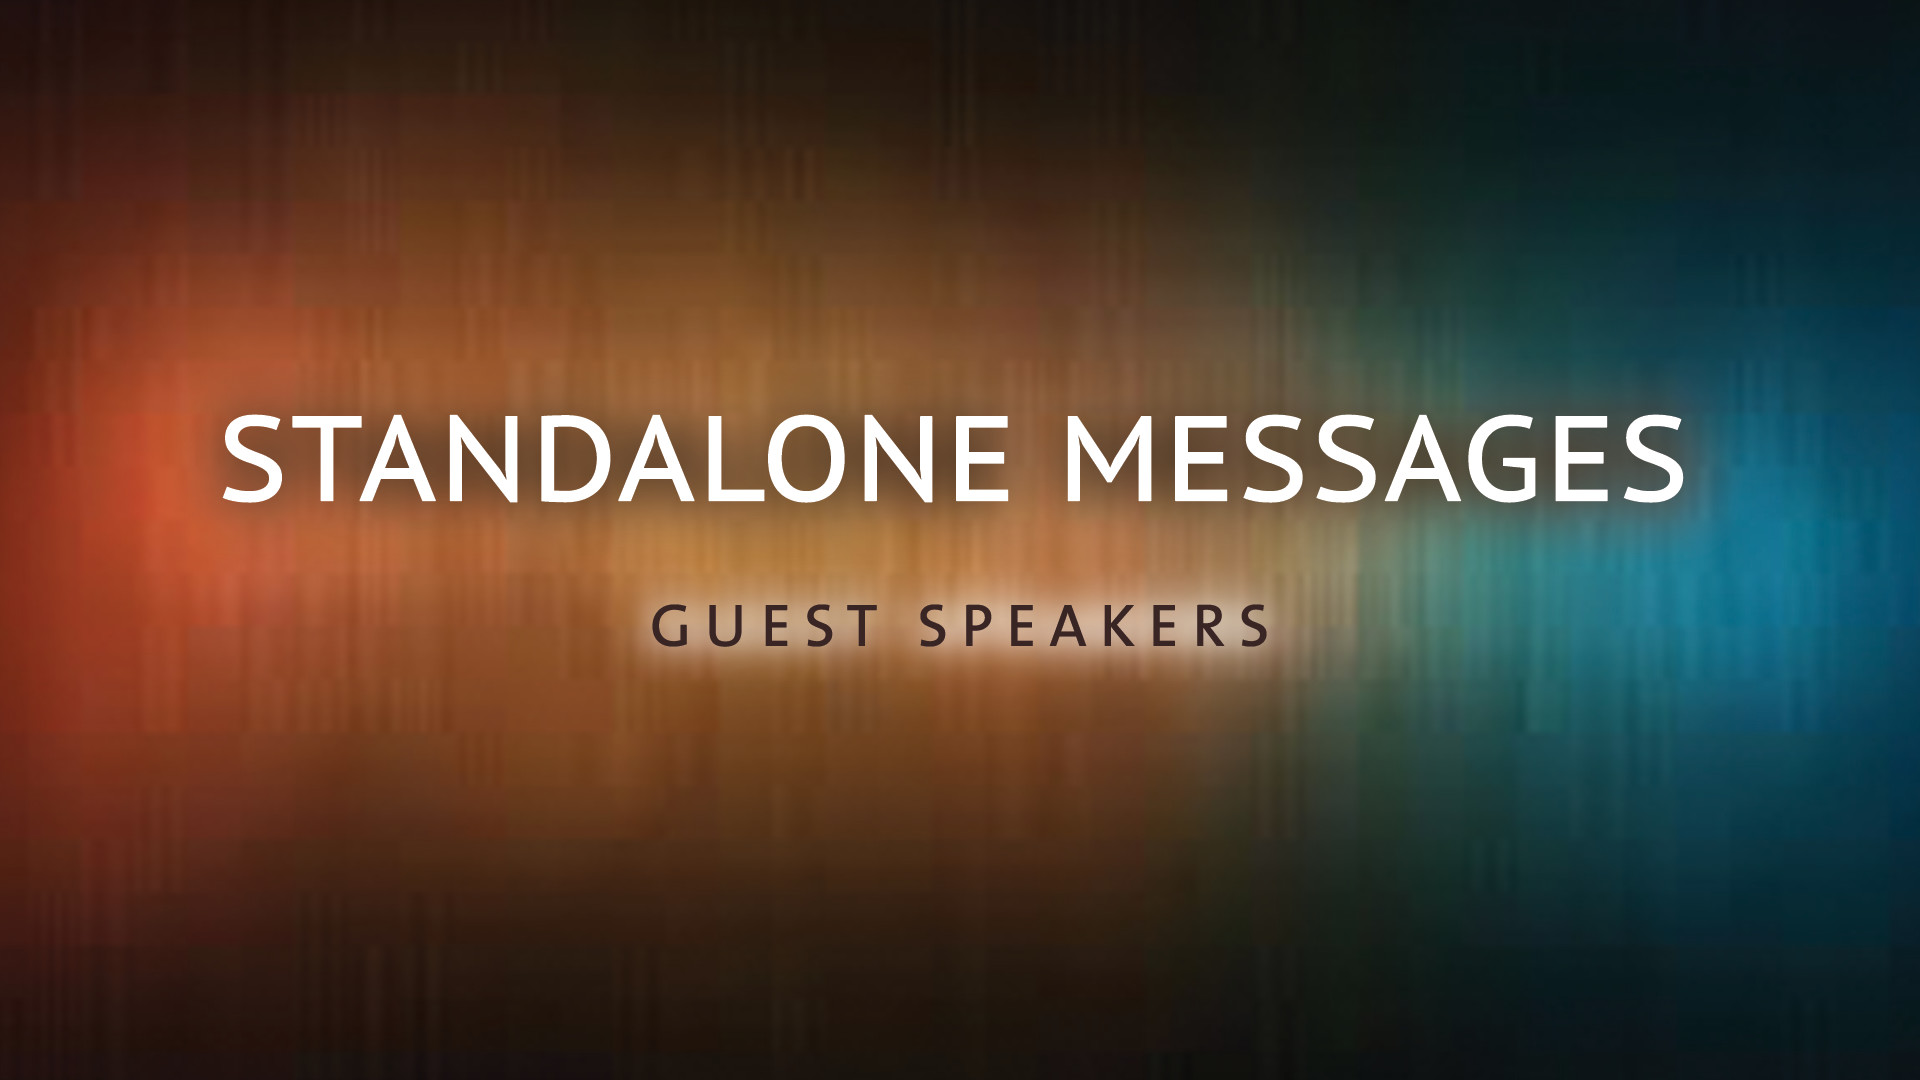 Standalone Messages